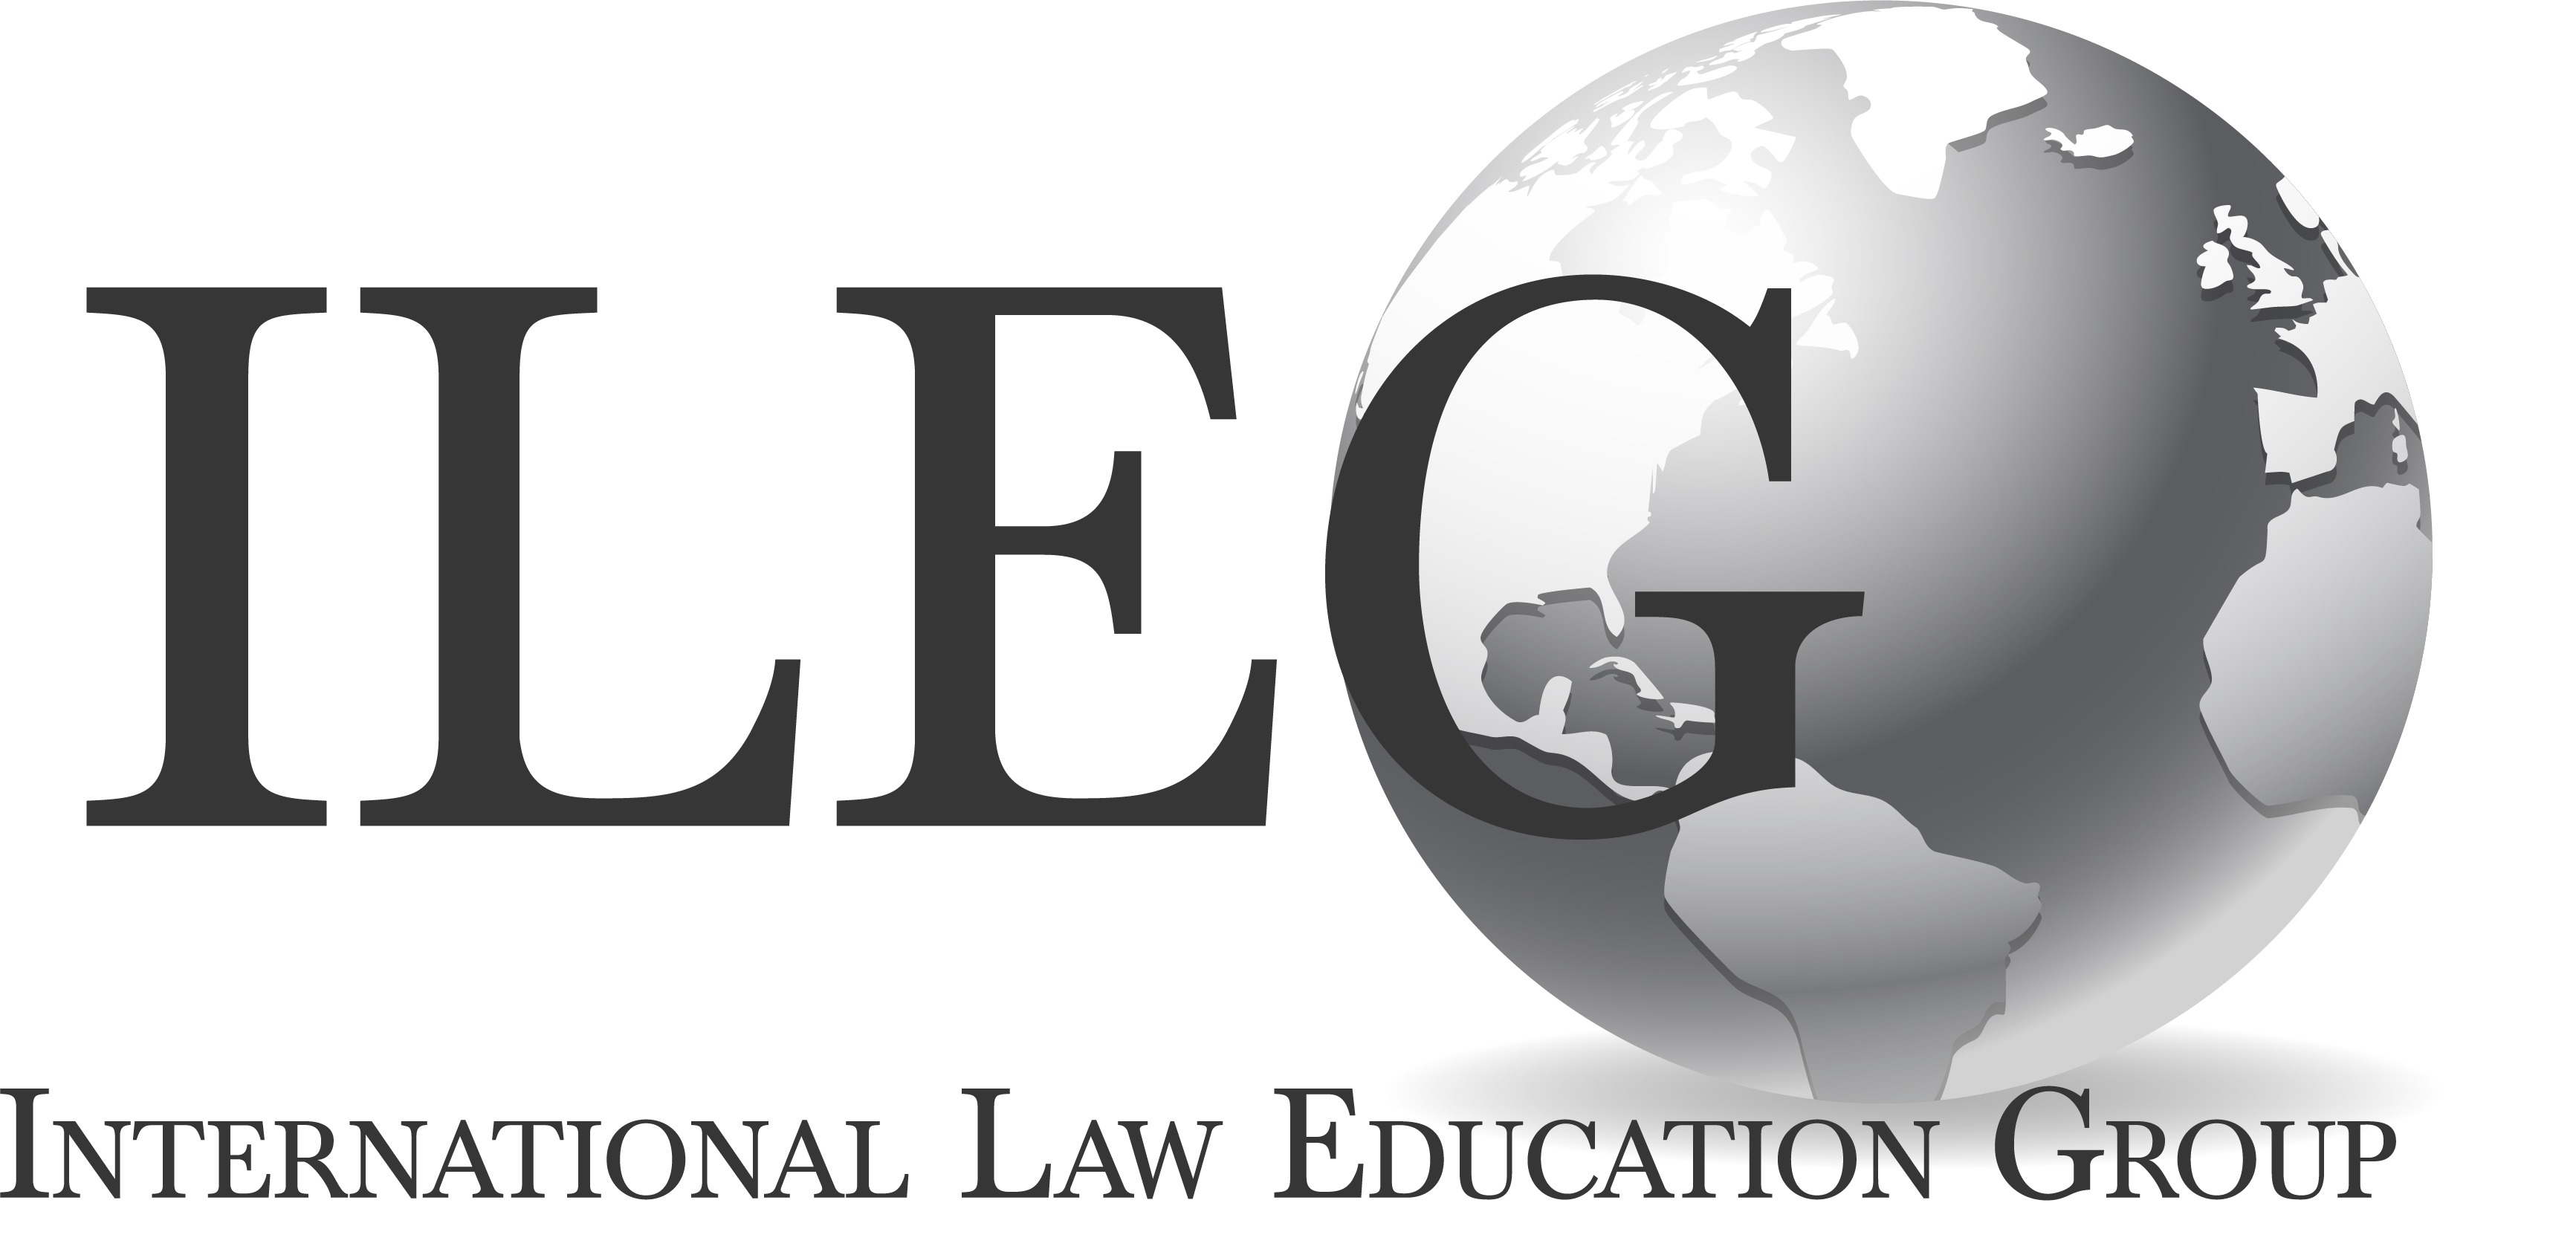 International Law Education Group